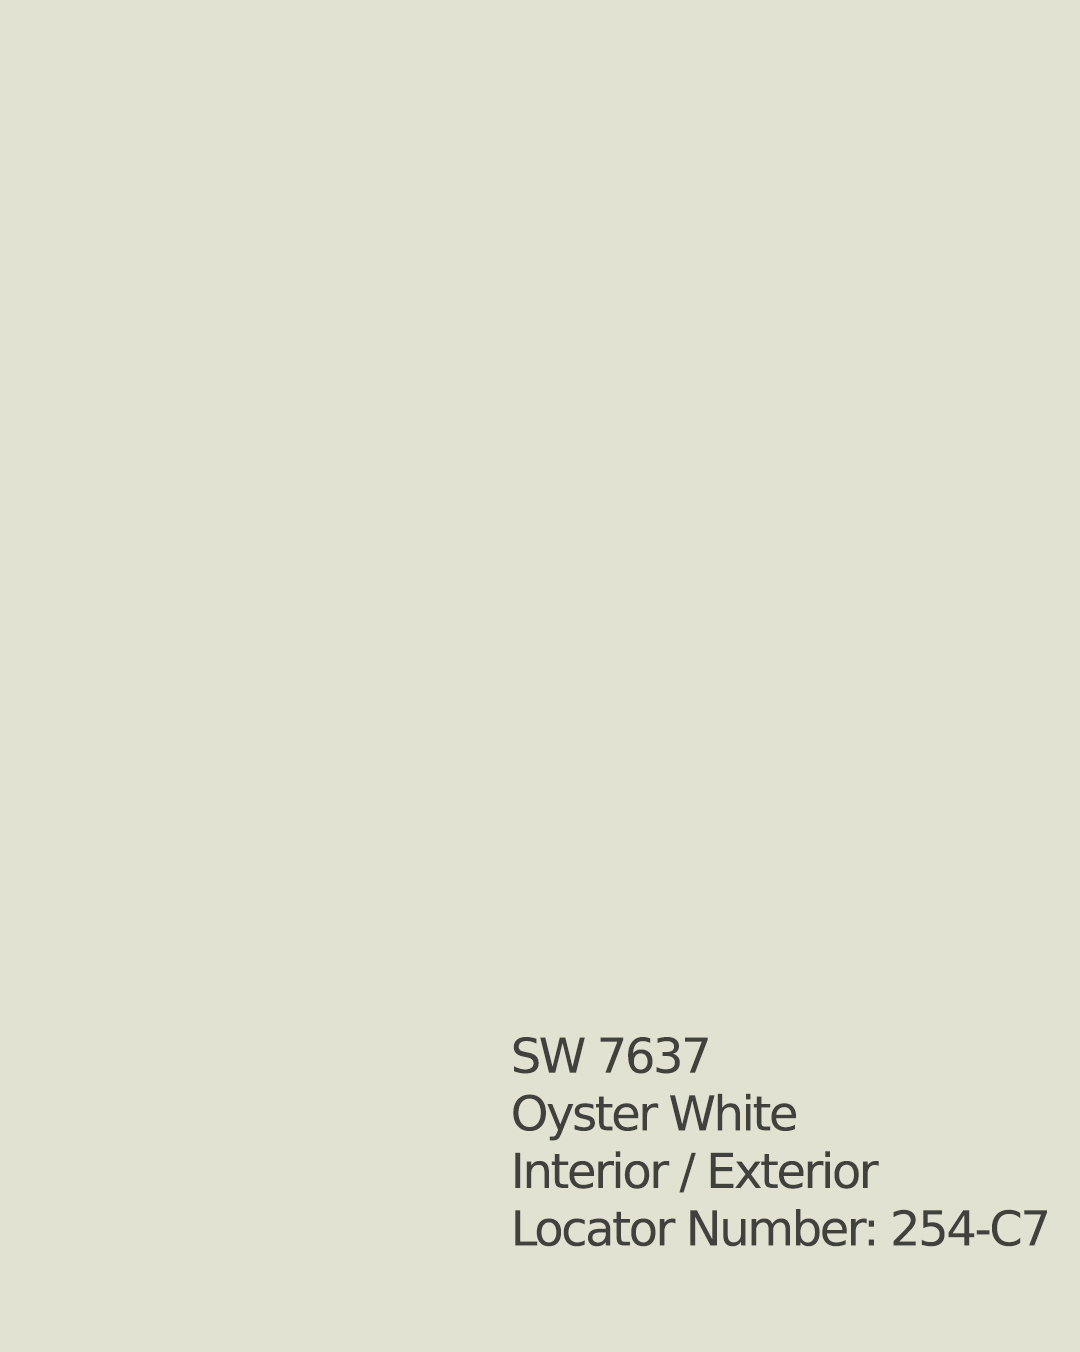 SW 7637 Oyster White